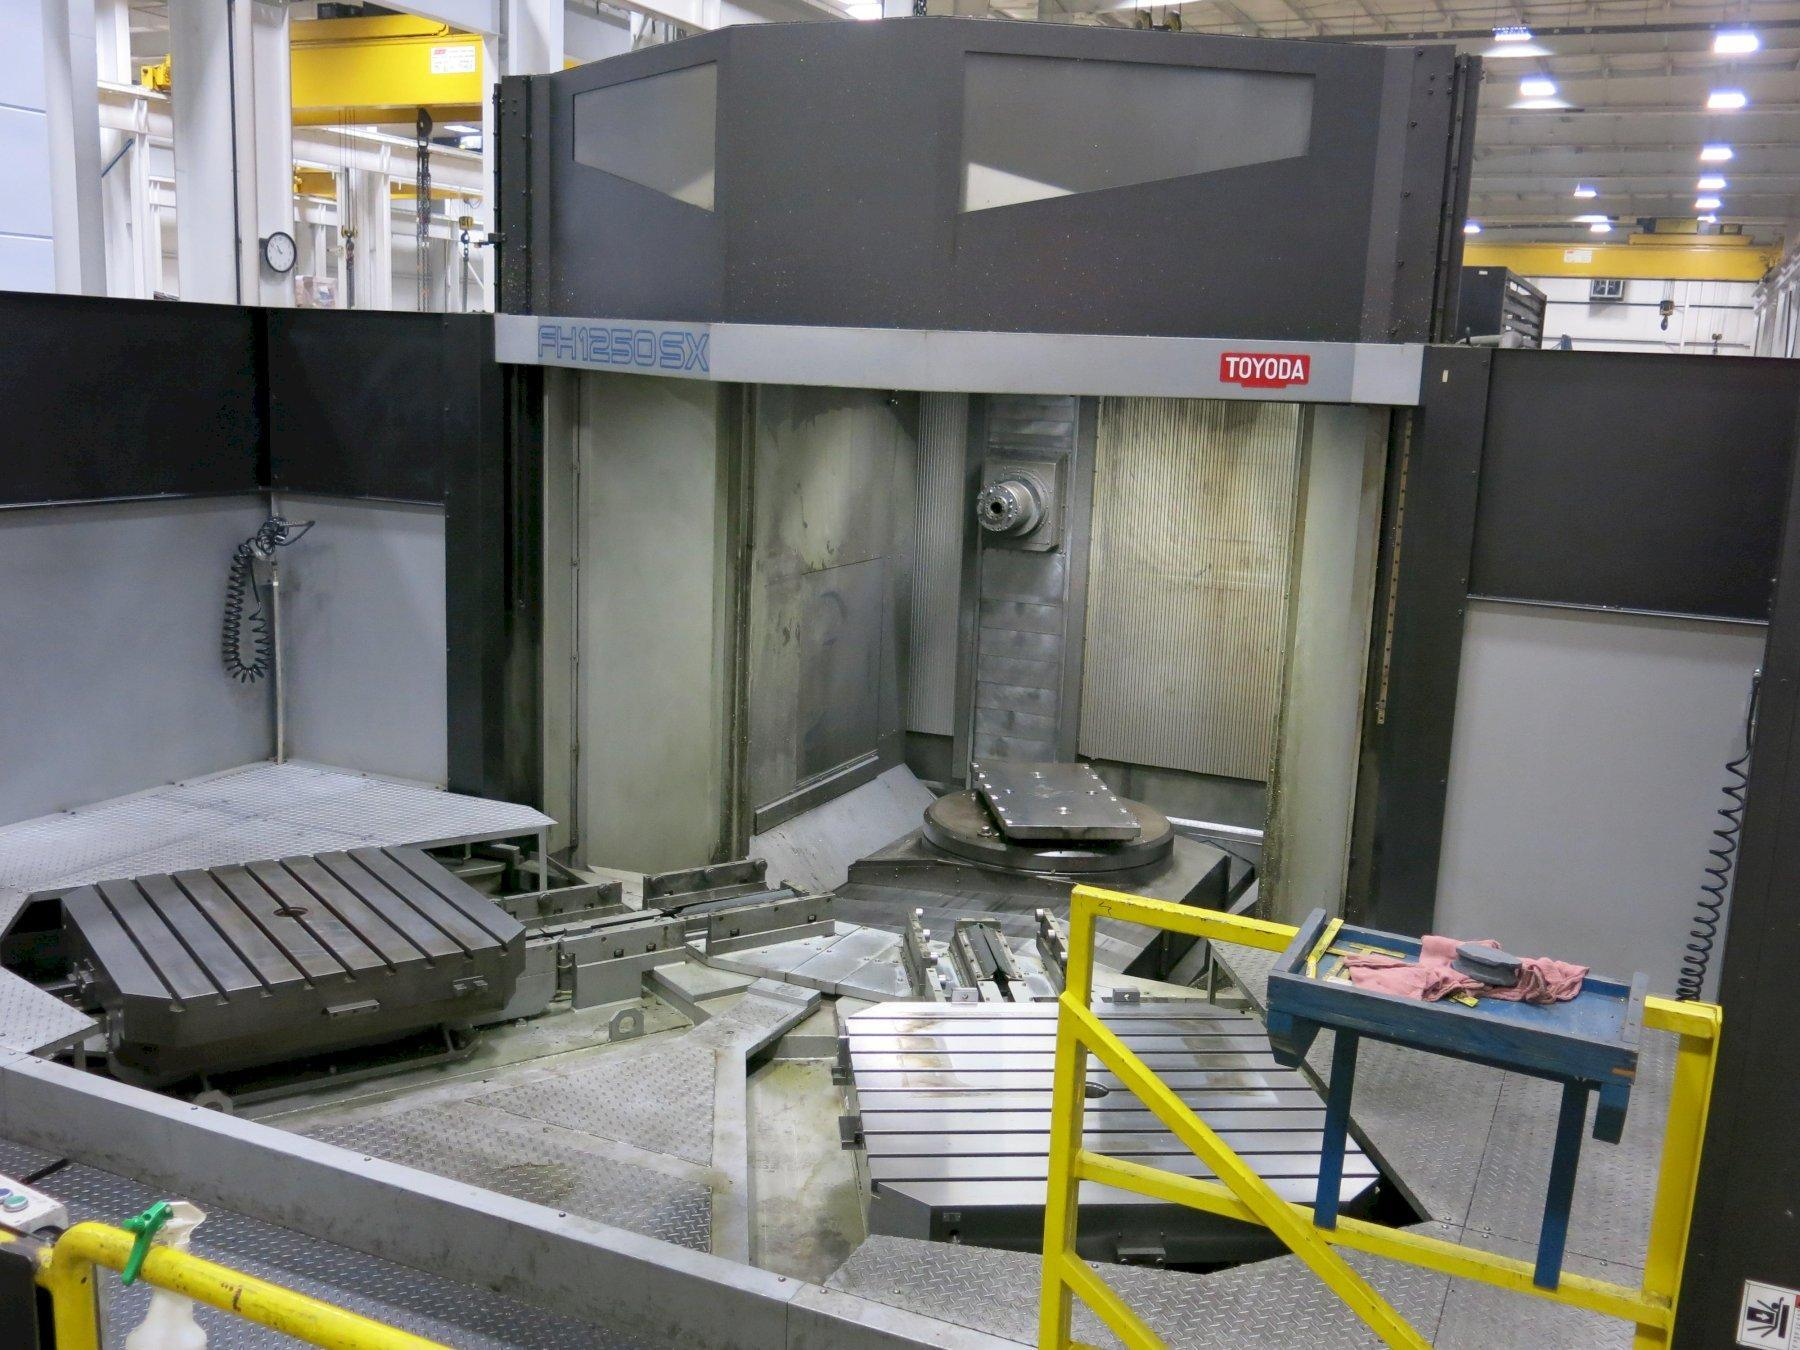 Toyoda Model FH-1250SX CNC Horizontal Machining Center, Fanuc 31i, 8000 RPM Spindle, 1-Deg. Index, Coolant Thru, CAT 50, 60 ATC, Probing, 50HP, New 2008